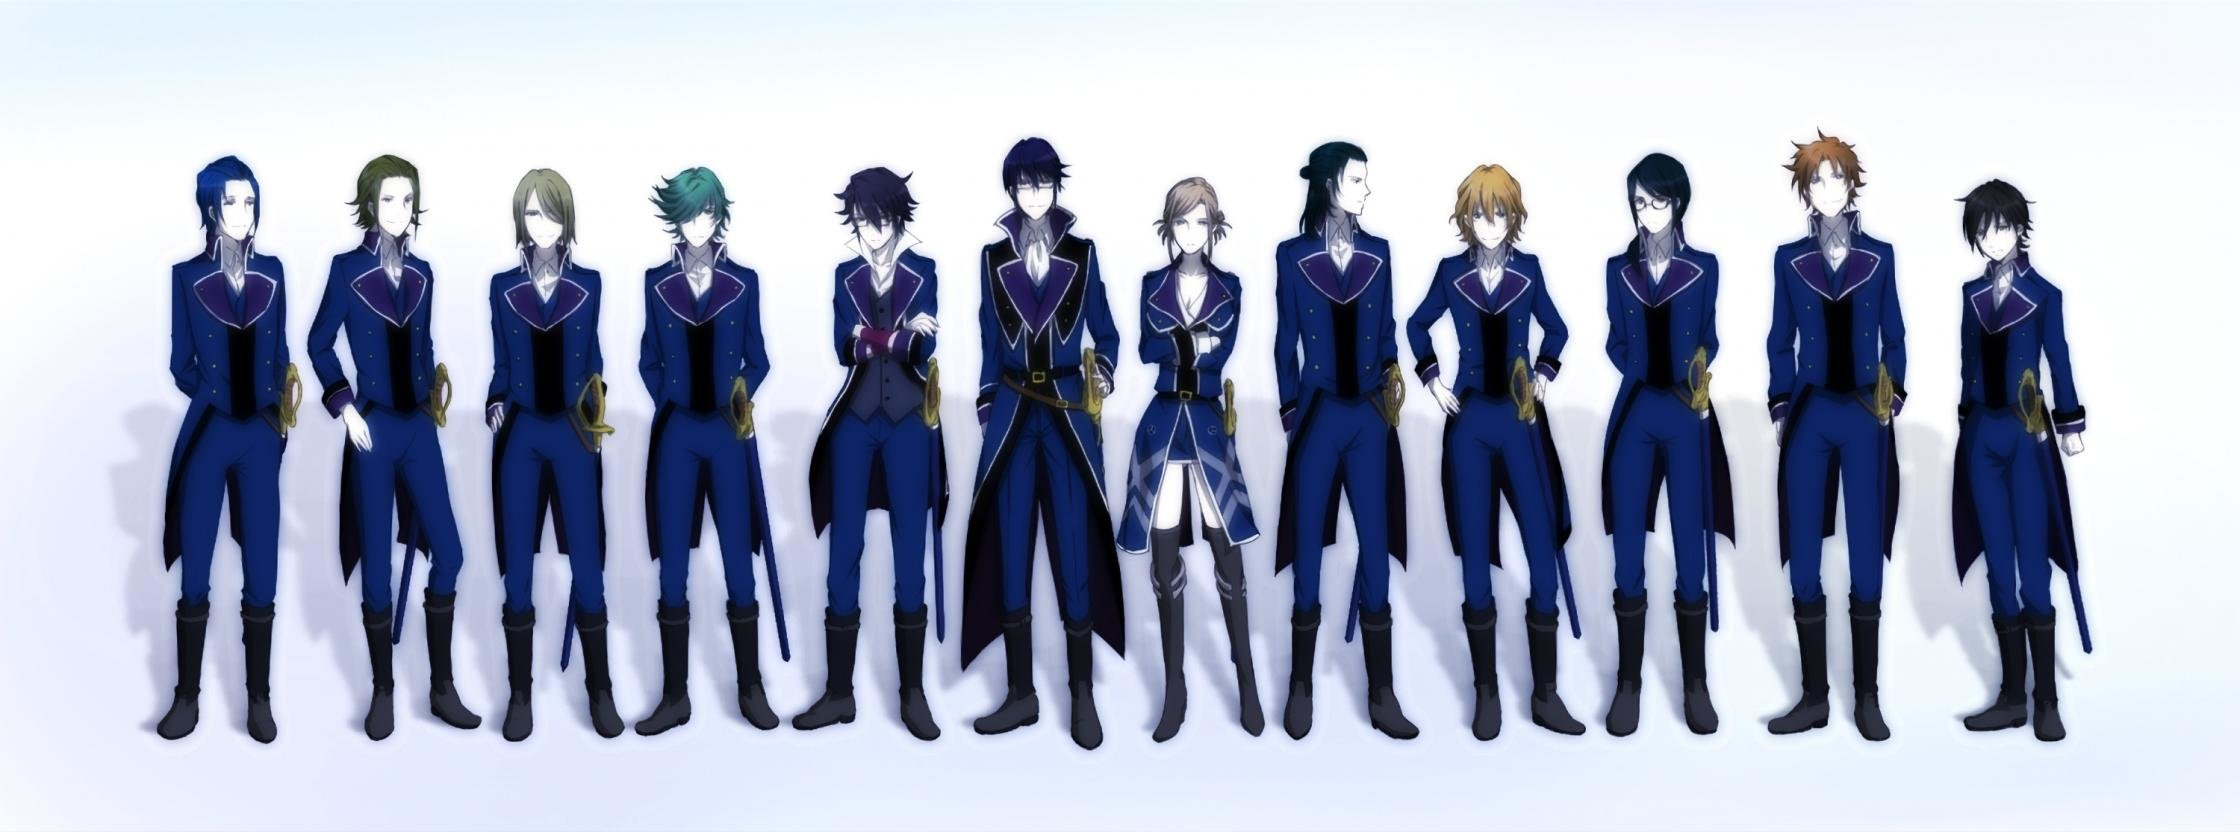 High resolution K Project dual screen 2240x832 wallpaper ID:315763 for computer